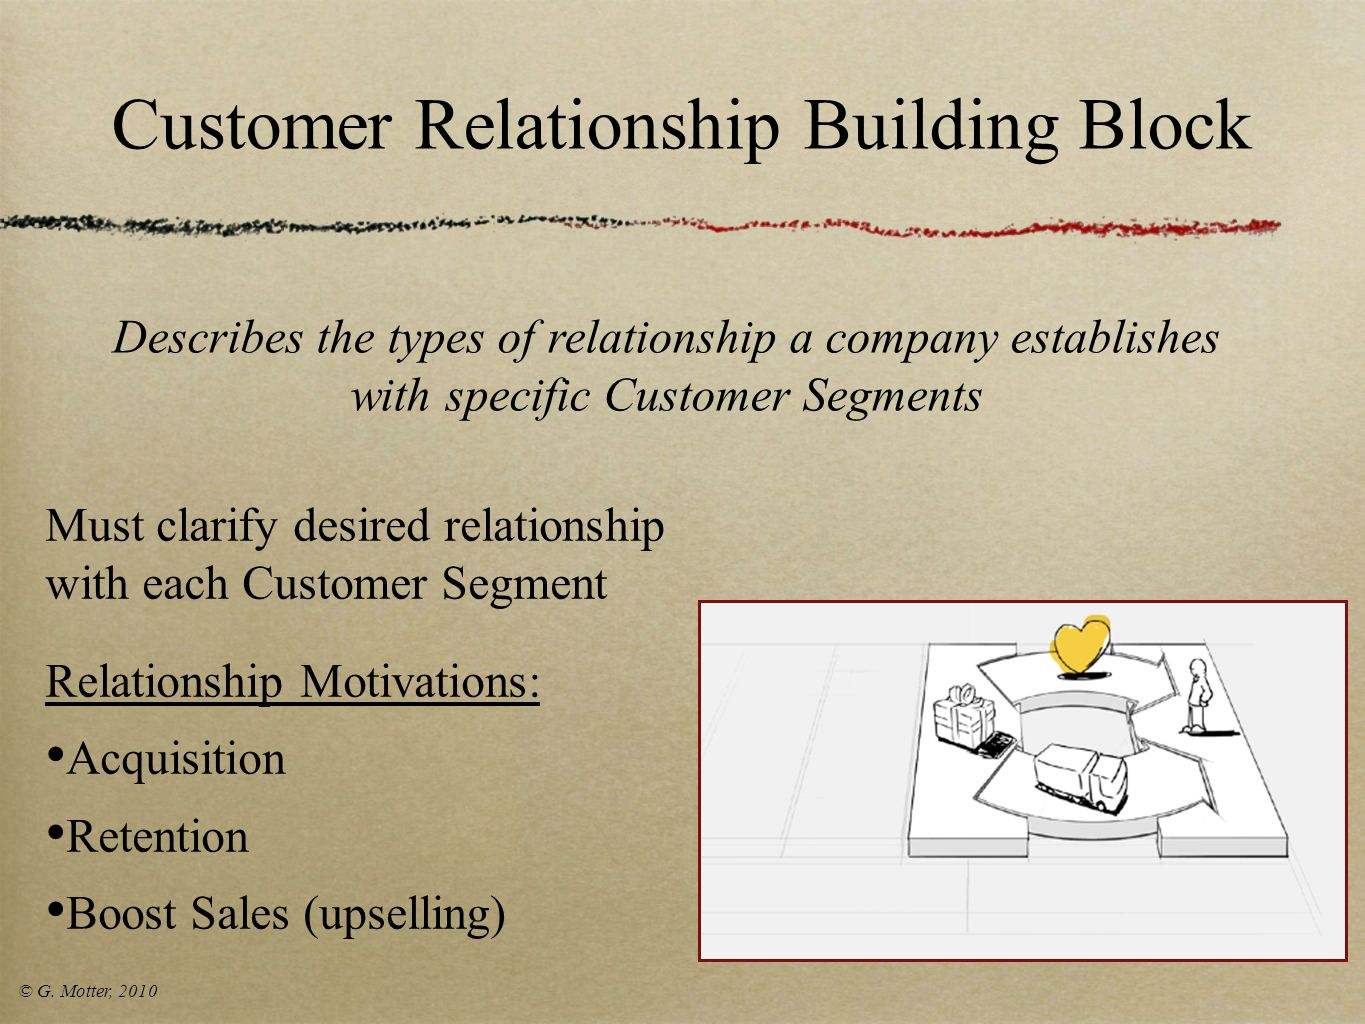 Customer Relationship Building Block